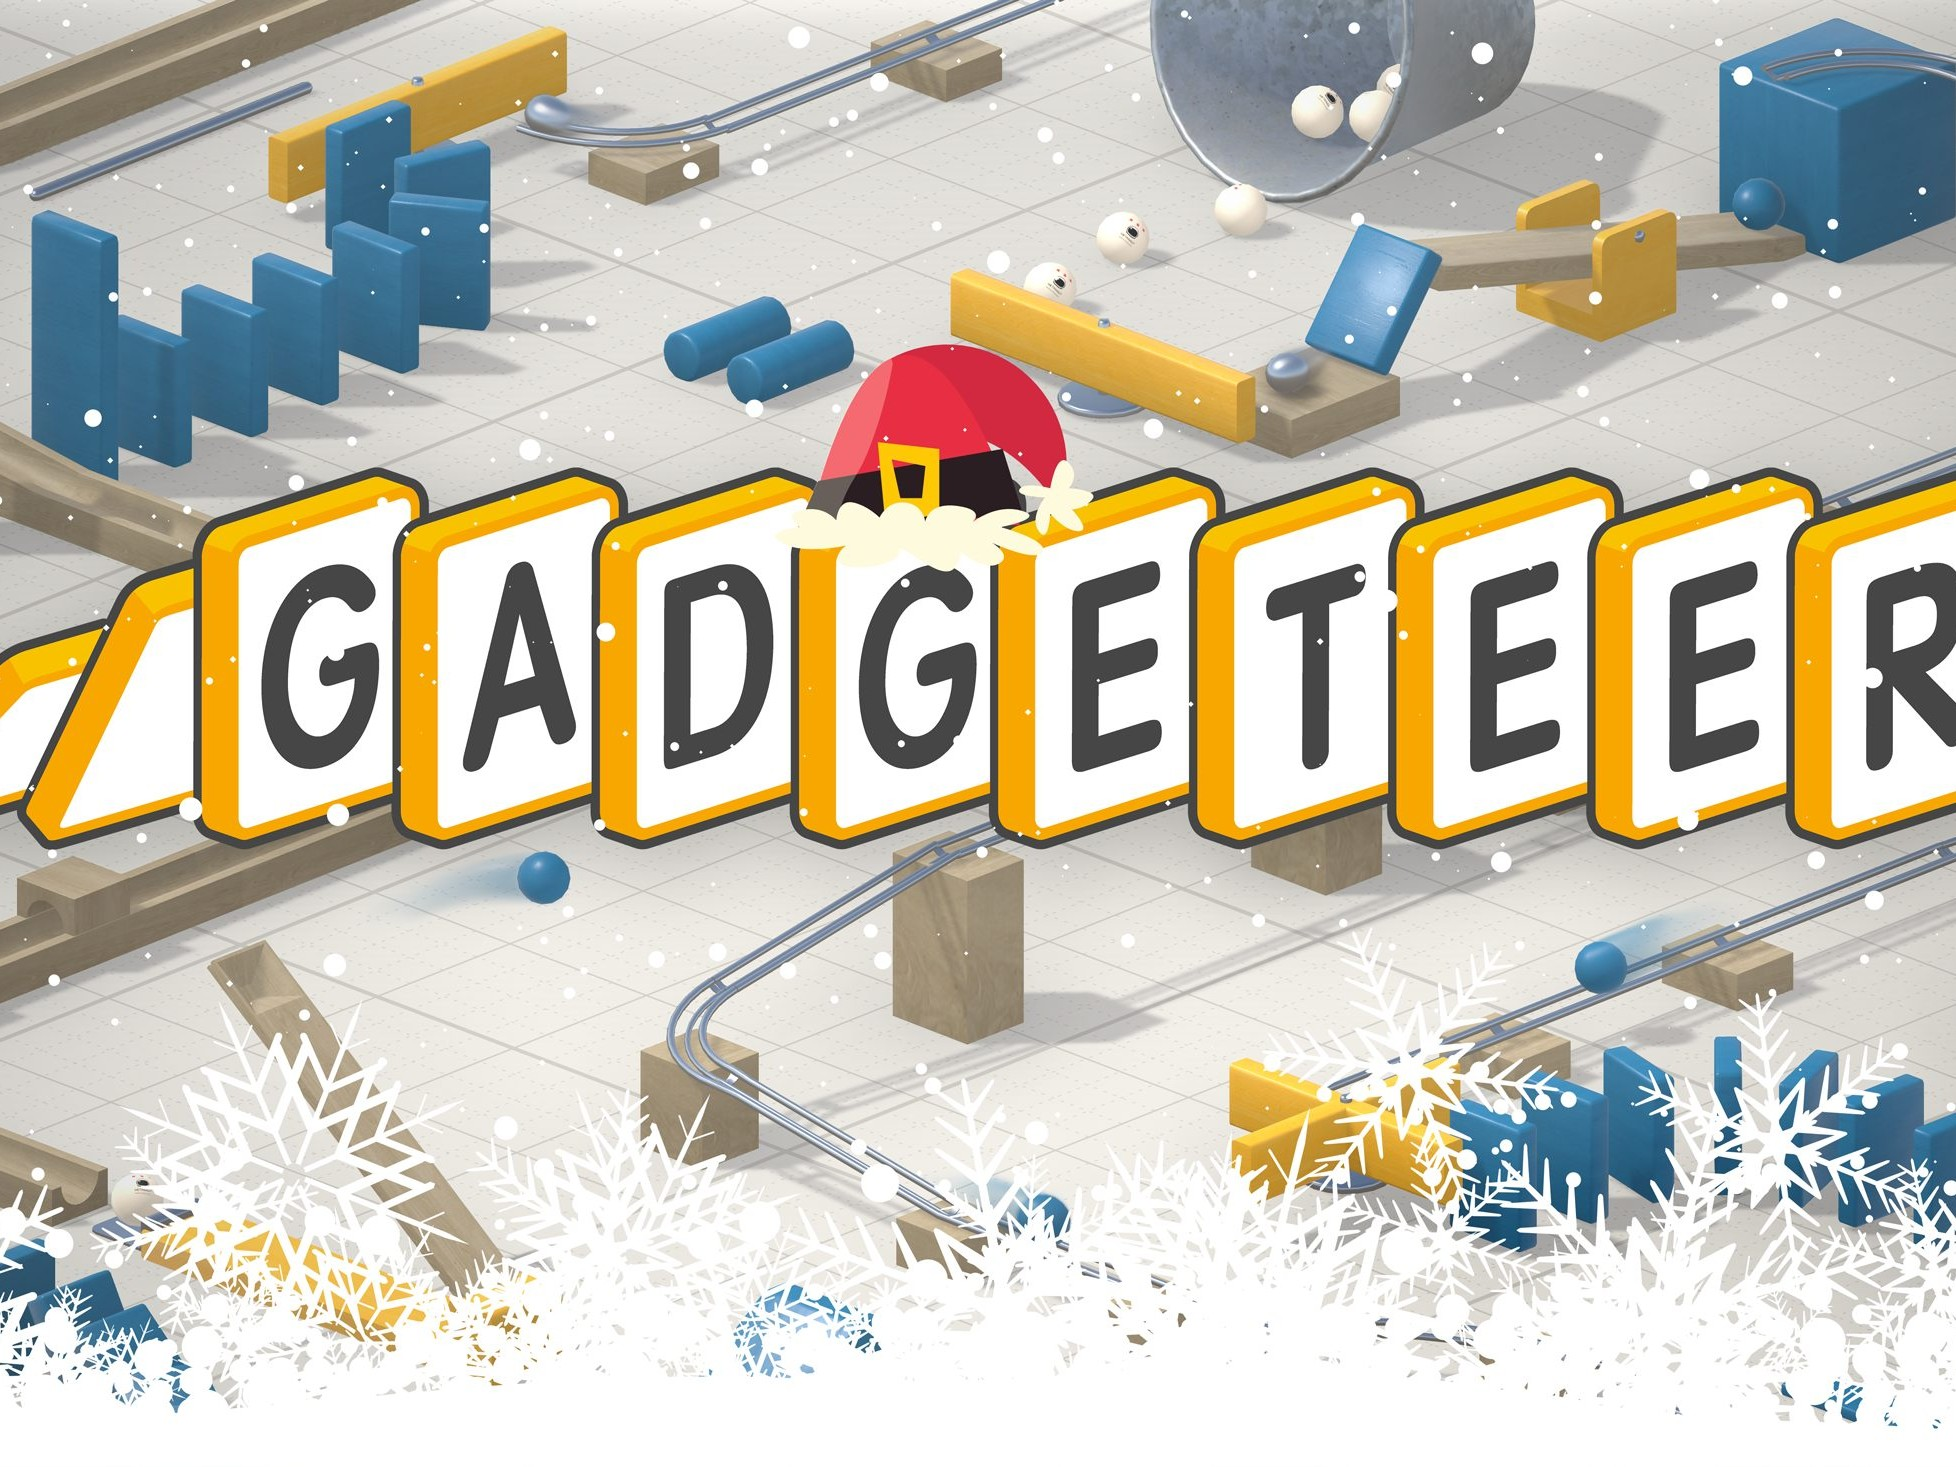 gadgeteer vr happy holidays sale